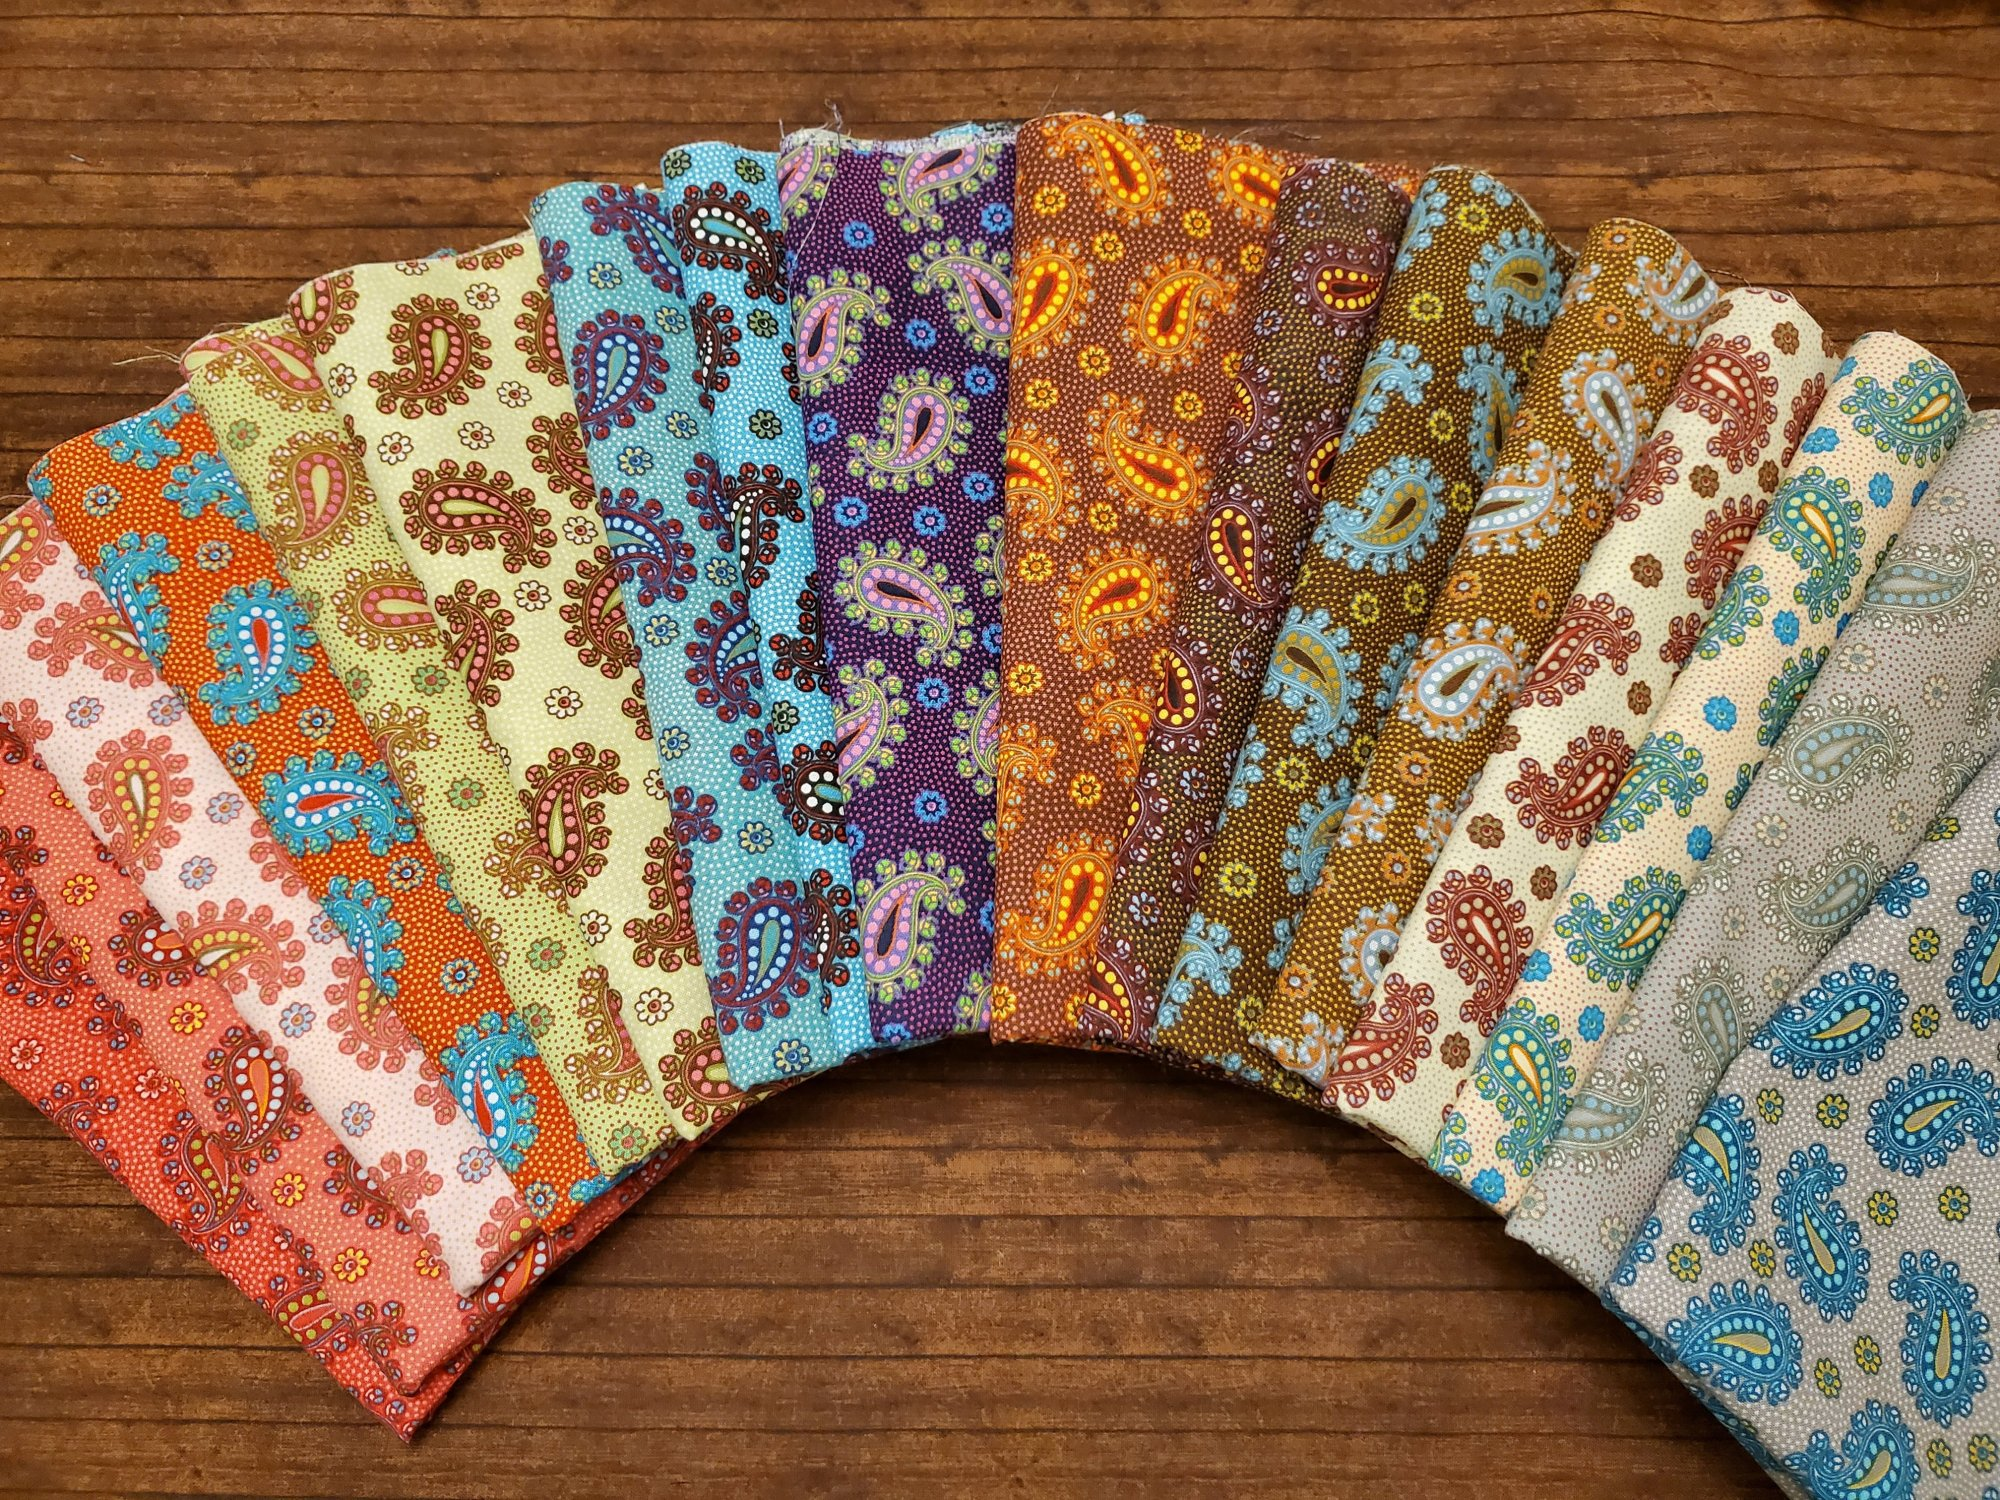 Perky Paisley - Rachael's Picks - 17 Piece Half Yard Bundle Pack